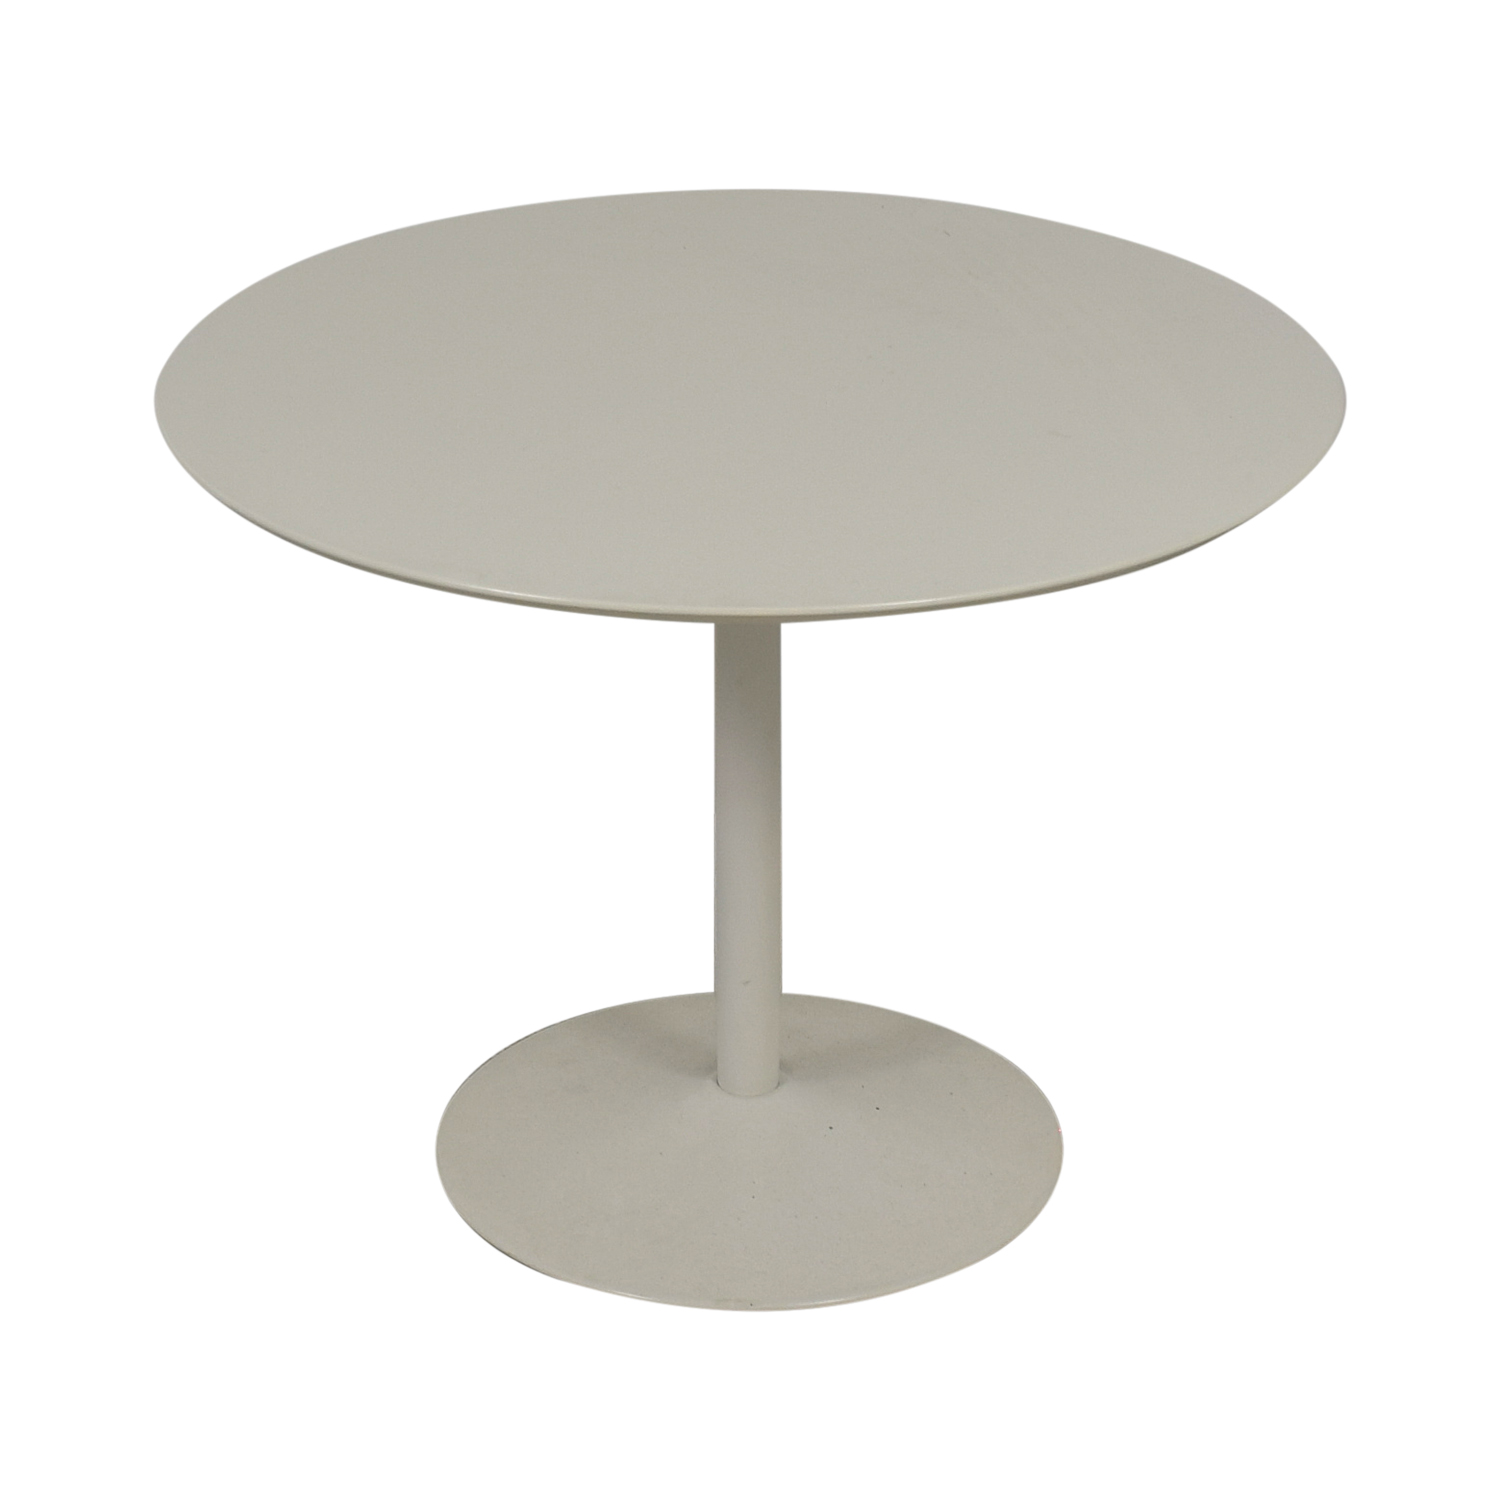 CB2 CB2 Odyssey White Tulip Dining Table second hand